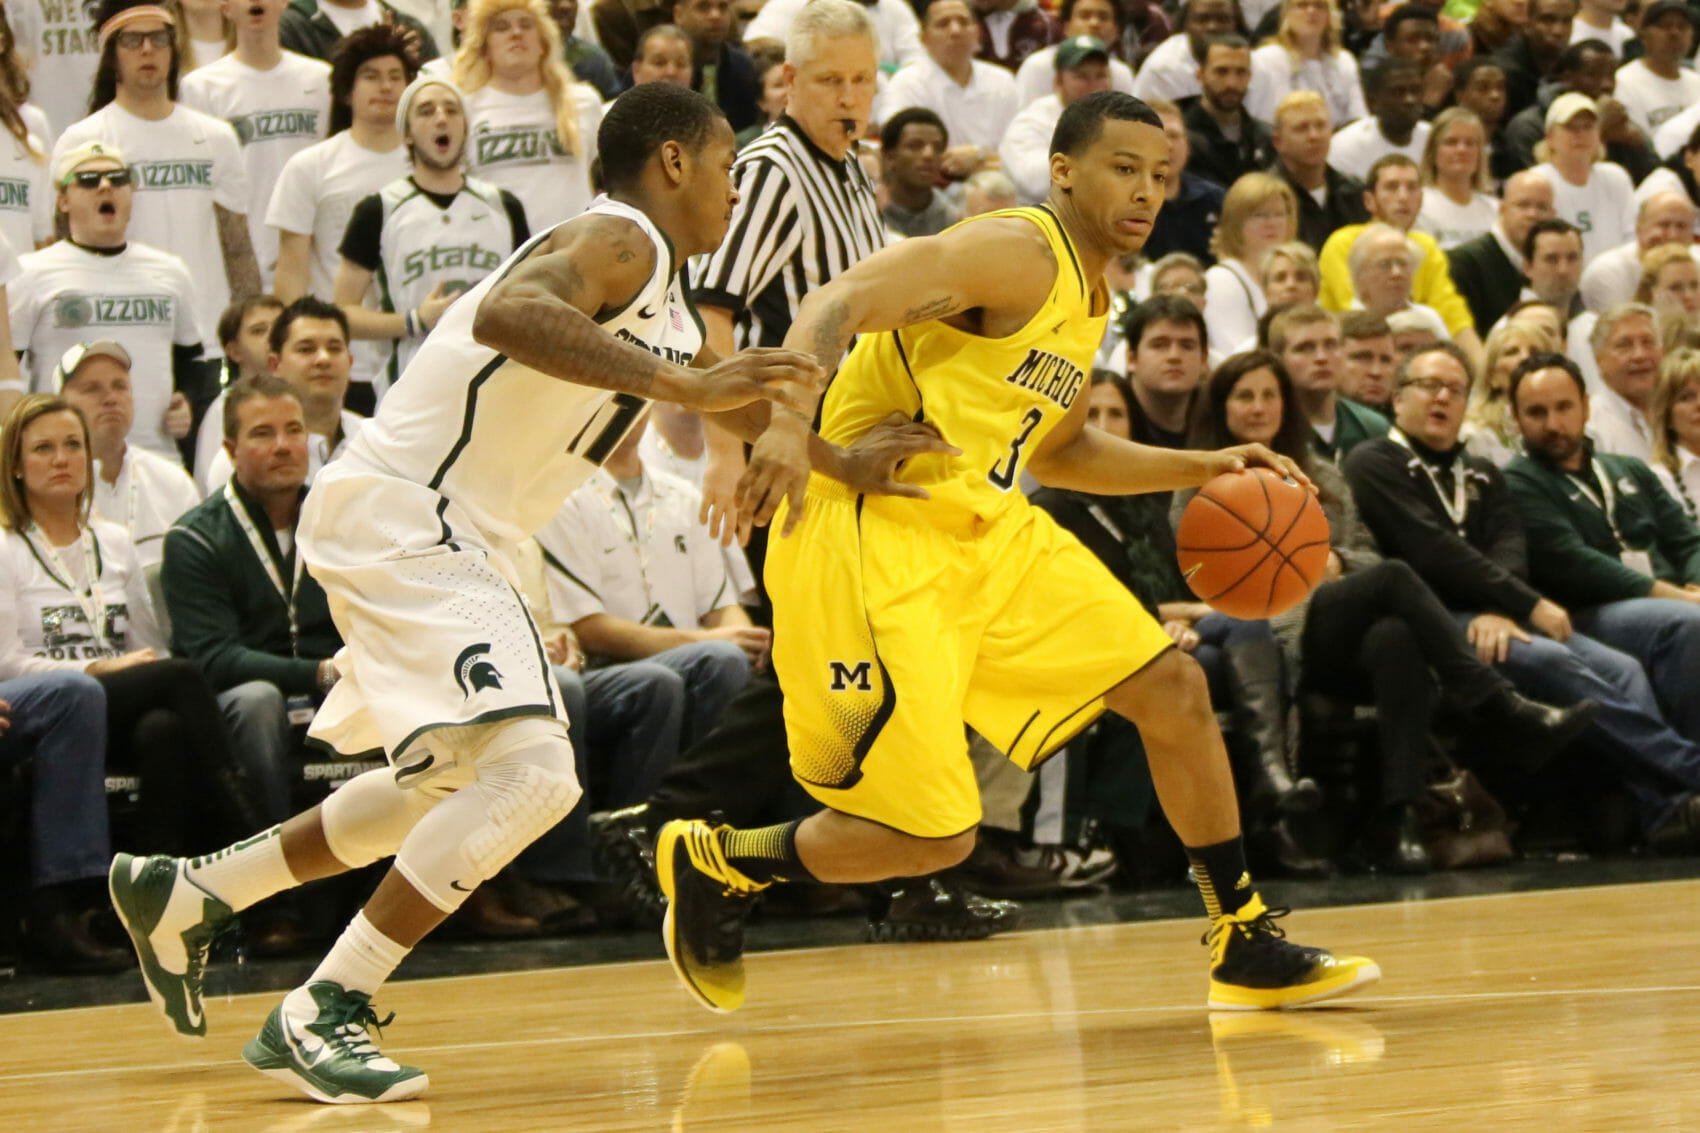 Michigan State 75, Michigan 52-19